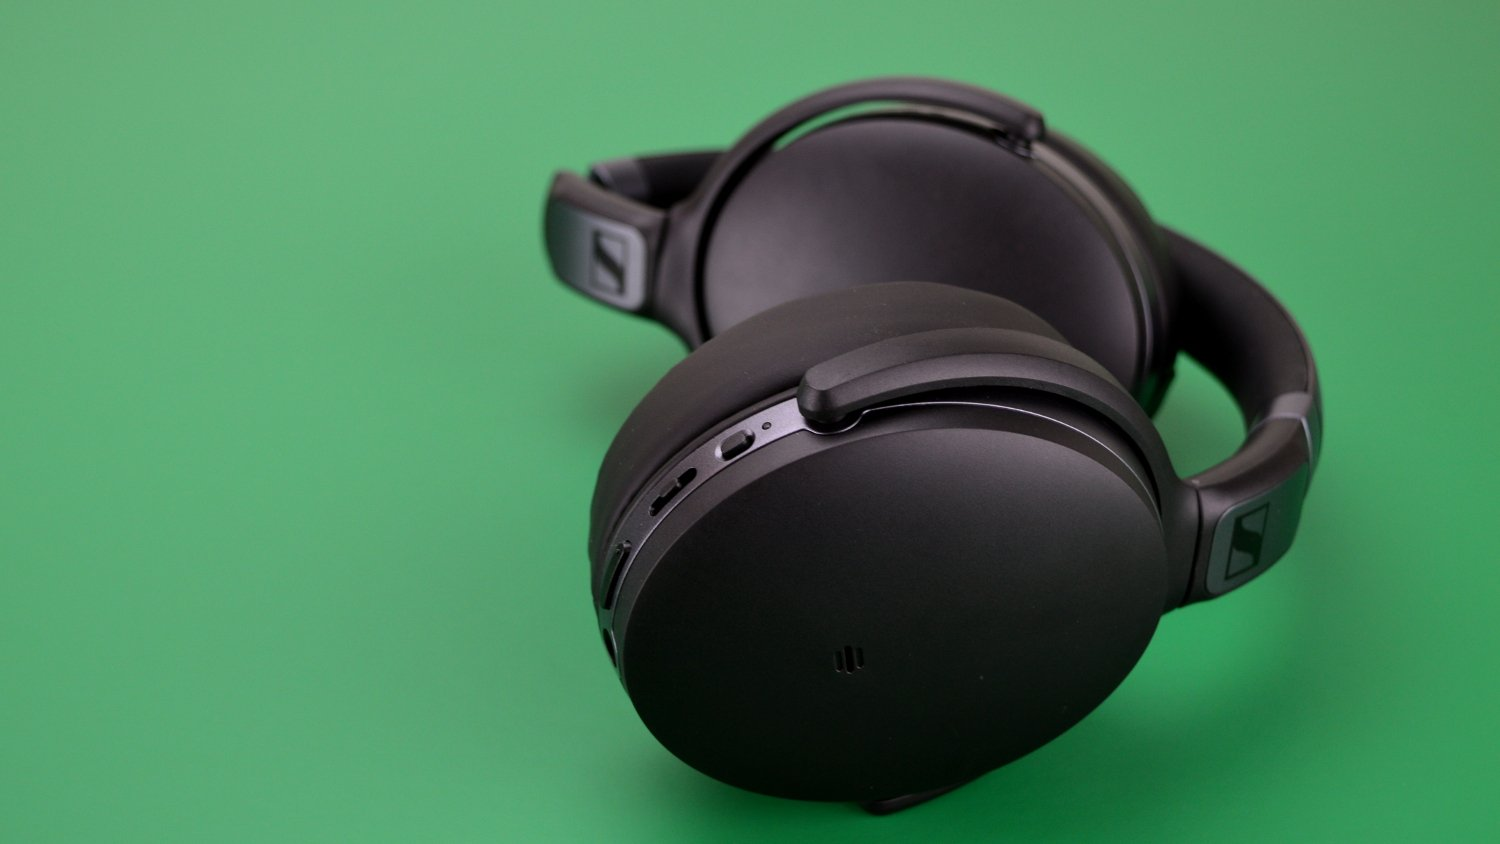 Sennheiser HD 4.40 BT Headphones Review - Headphone Review ff45feac34d9